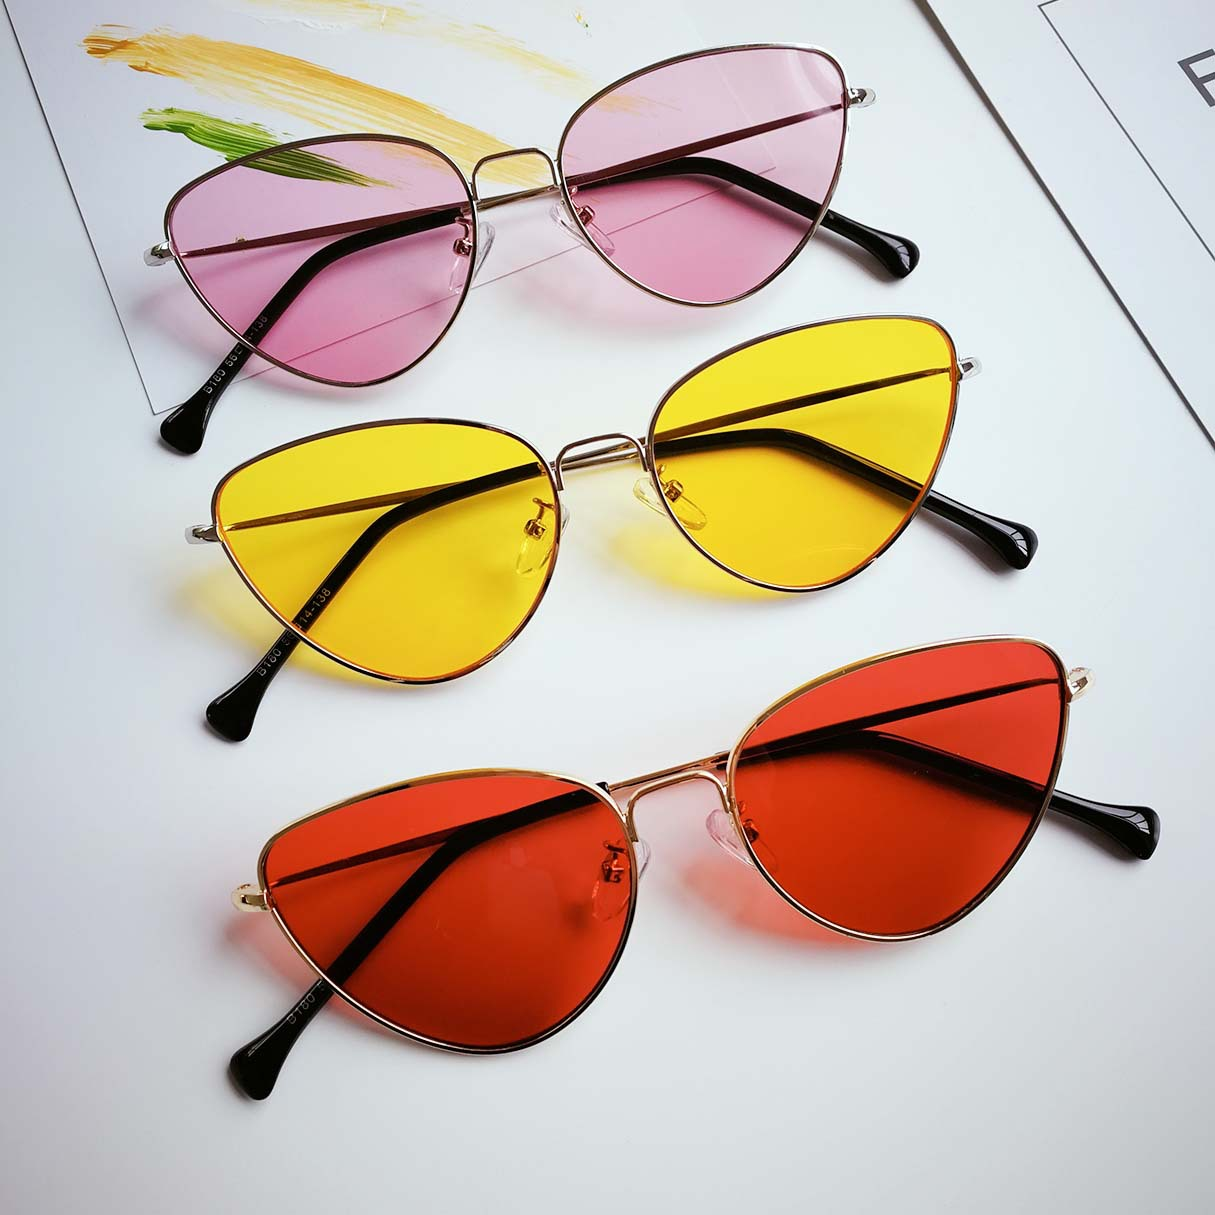 1ff08efb8a 2018 Chic Retro Women Cateye Sunglasses Fashion Men Yellow Tinted Lens  Eyewear-in Sunglasses from Apparel Accessories on Aliexpress.com